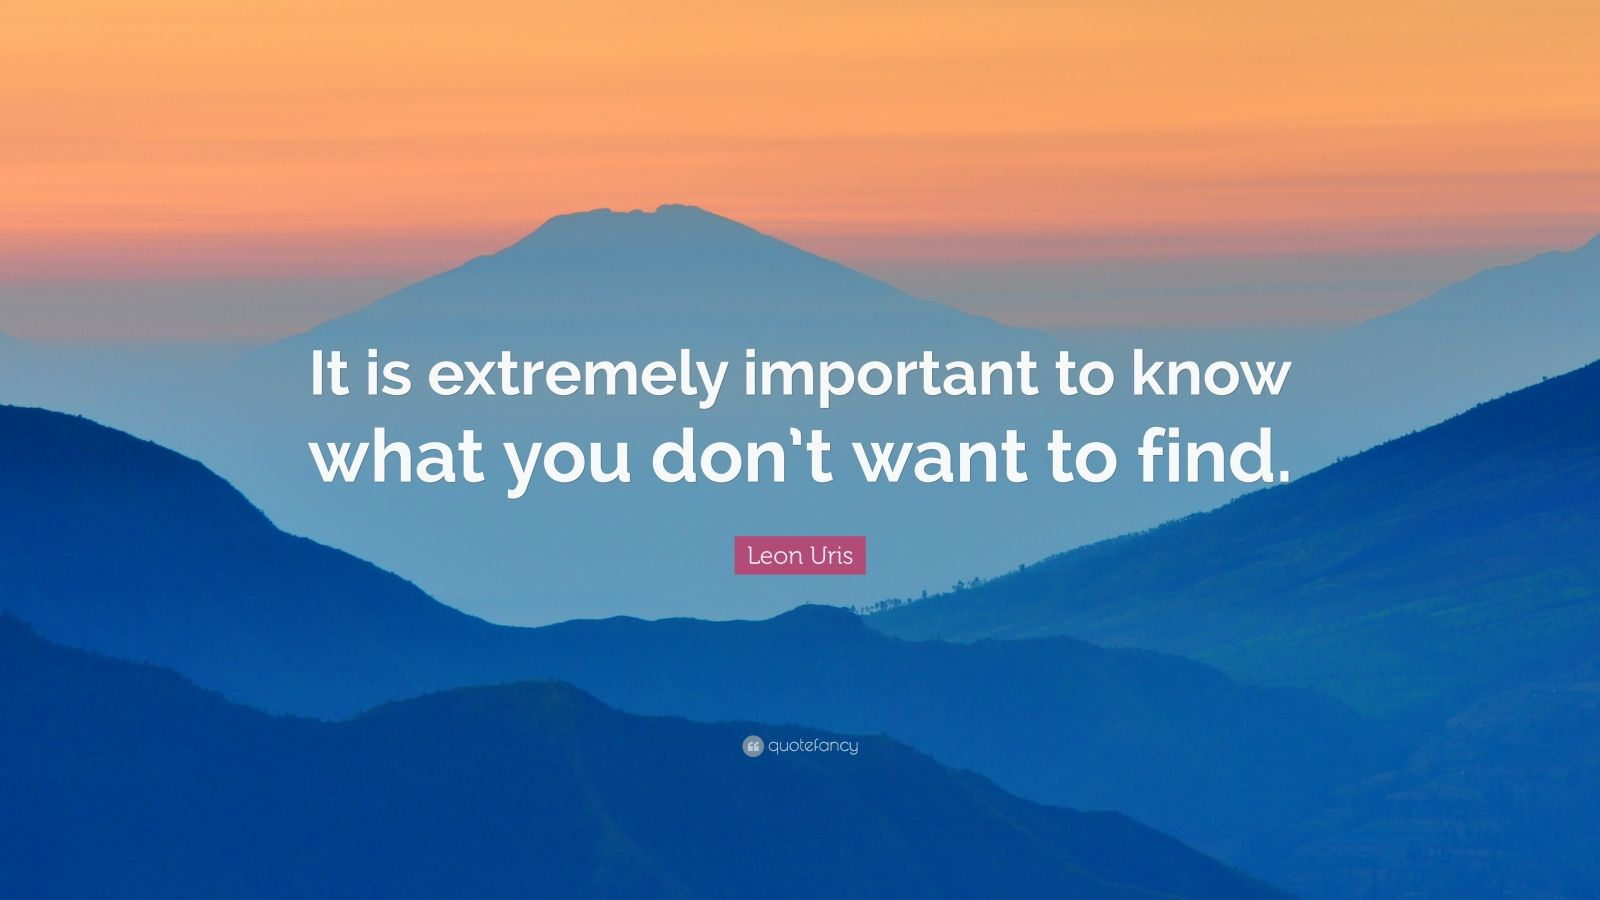 """Leon Uris Quote: """"It is extremely important to know what you don't want to find."""""""